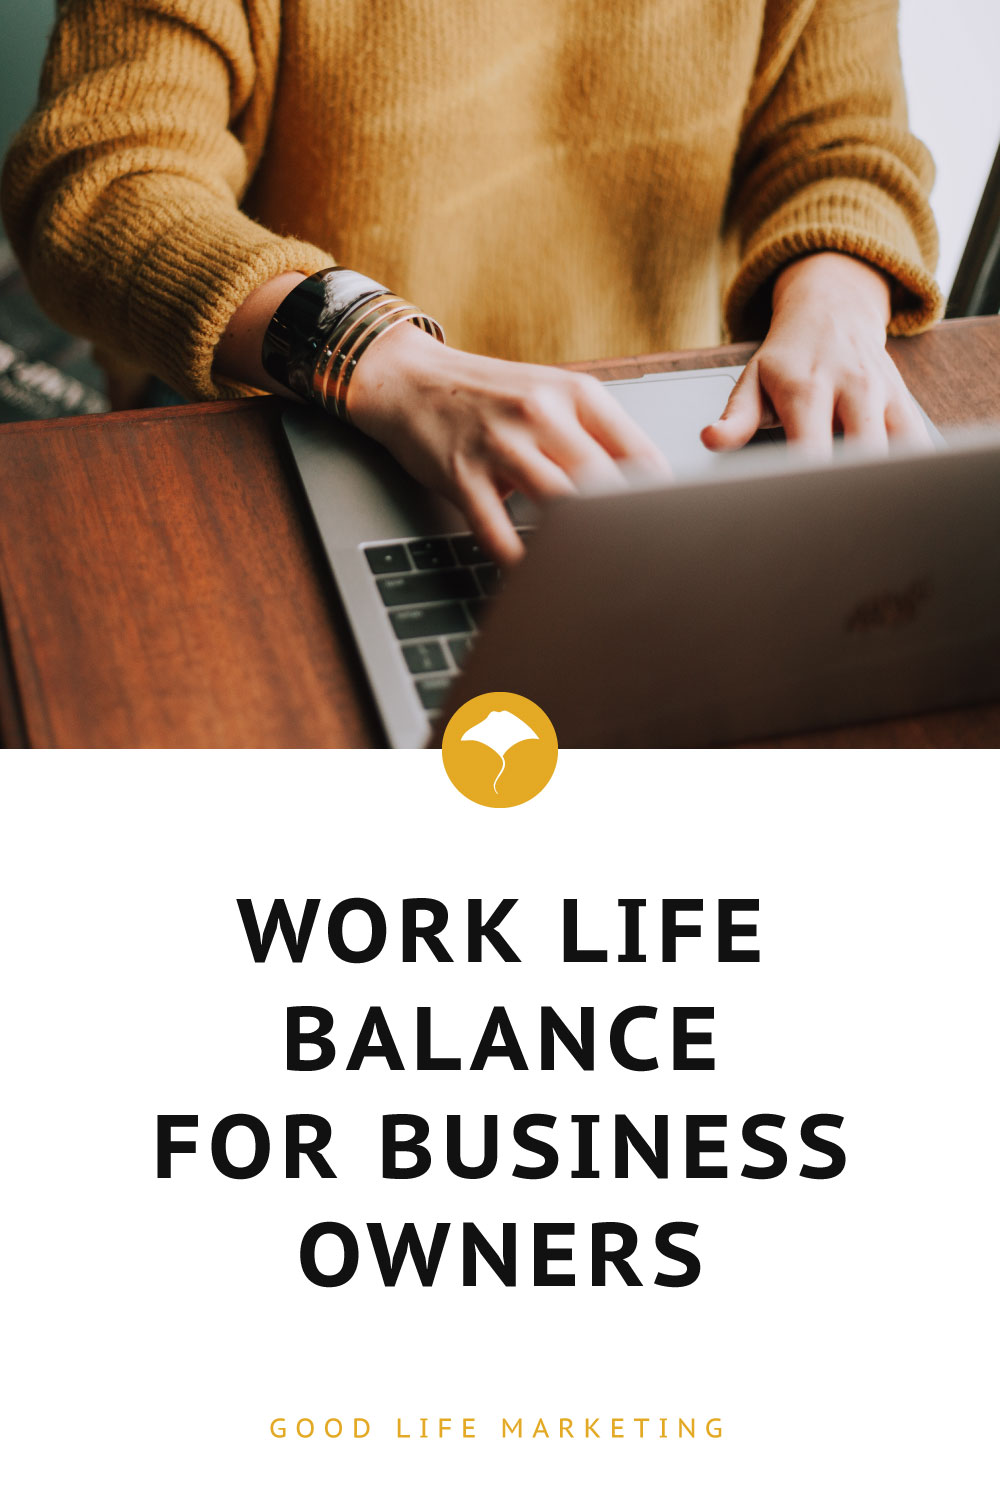 work life balance for business owners pin